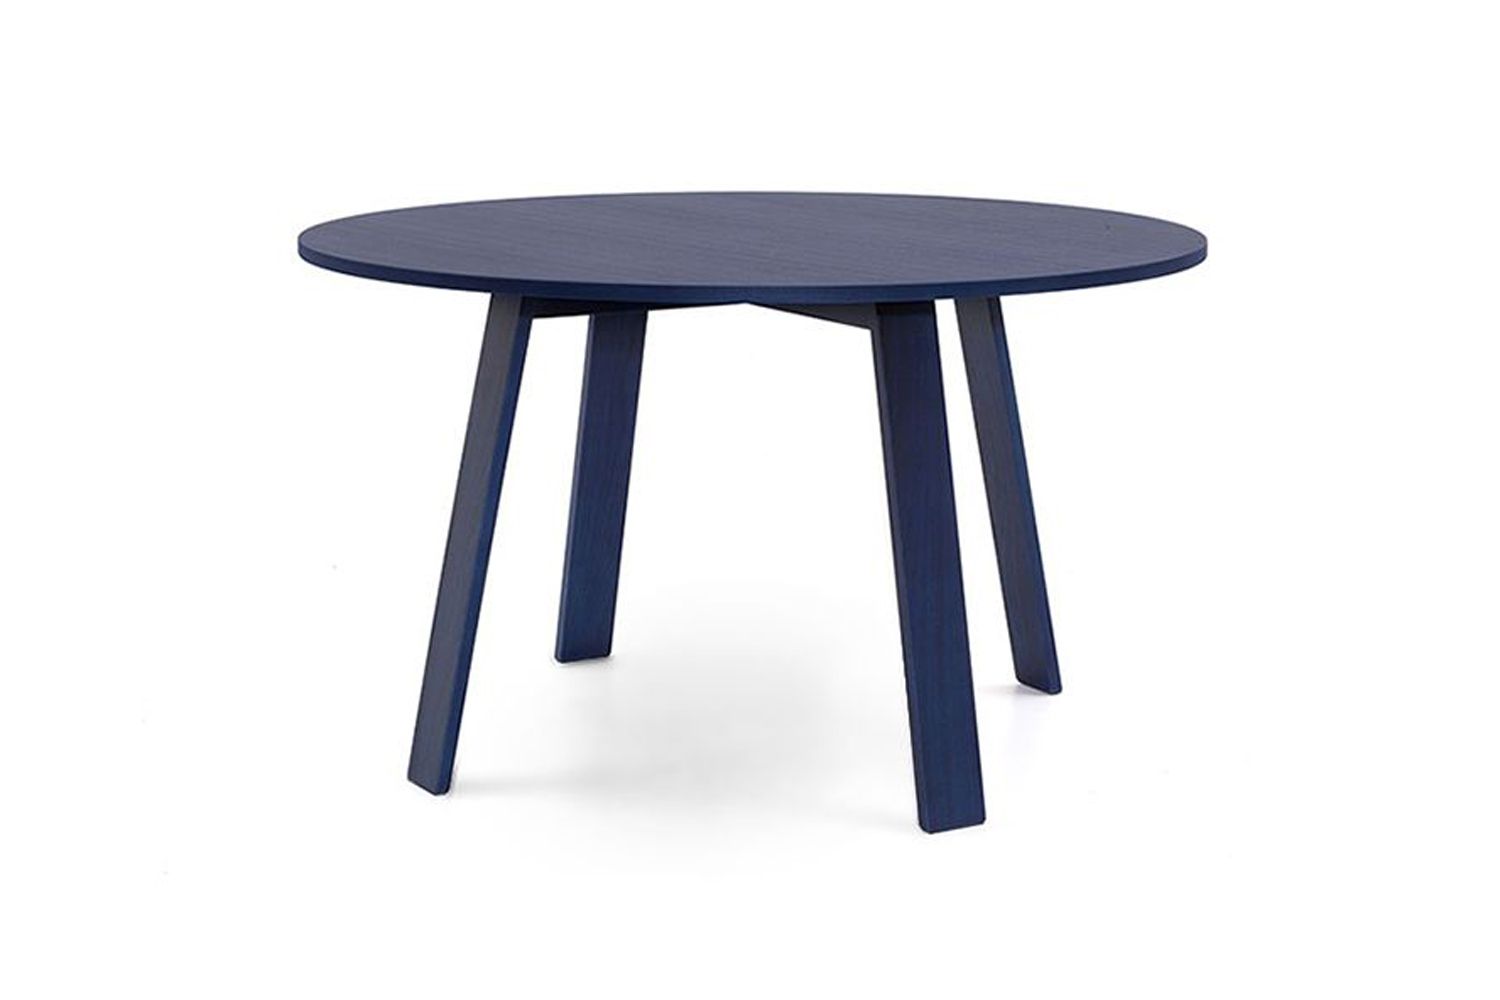 Designe dby Jasper Morrison for Cappellini, the Bac Table comes in a range of colors. Contact Cappellini for ordering information.